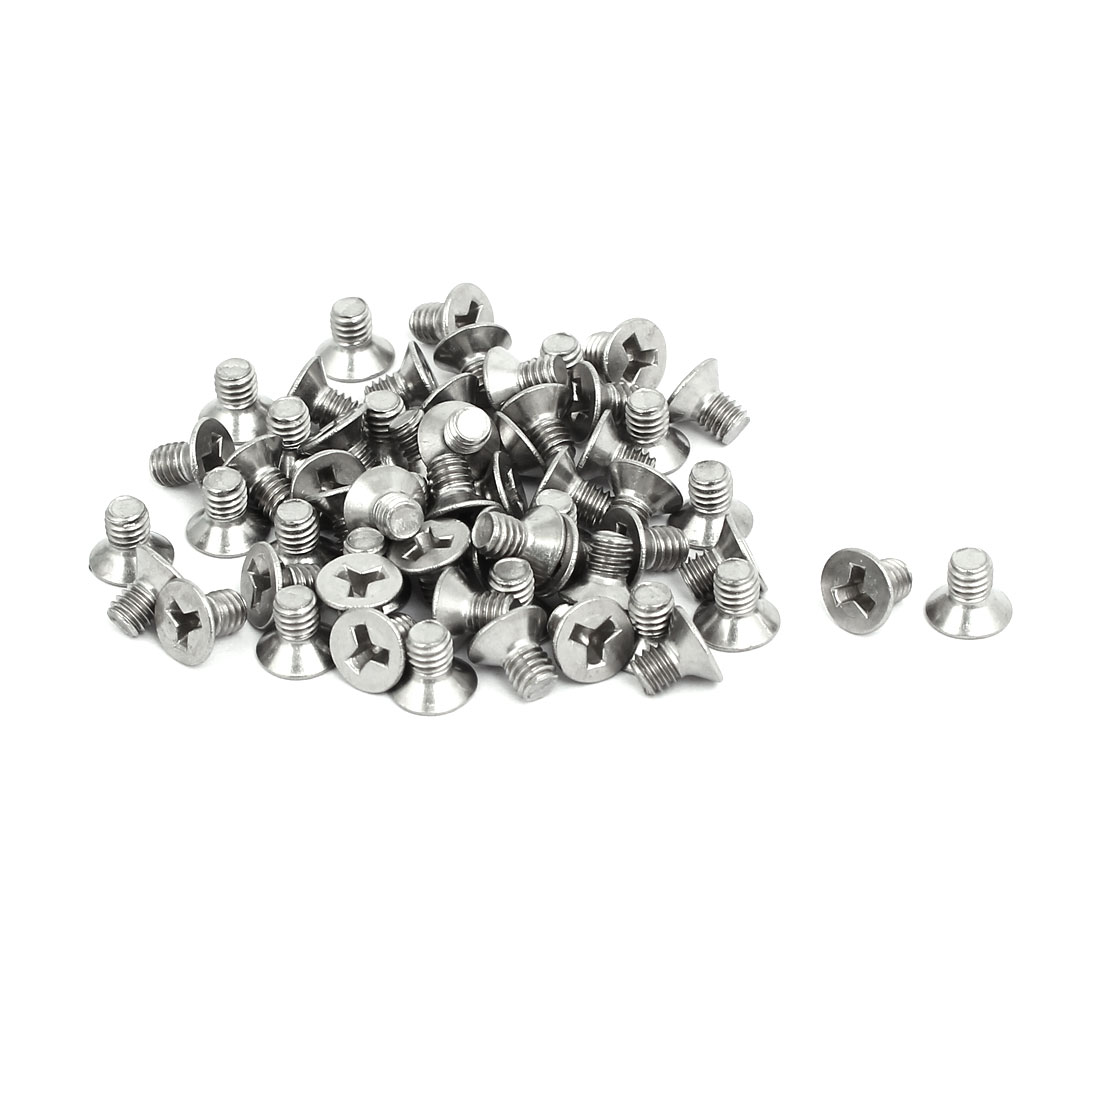 Unique Bargains M4x6mm 304 Stainless Steel Y Type Flat Head Tamper Proof Security Screws 60pcs - image 1 of 3